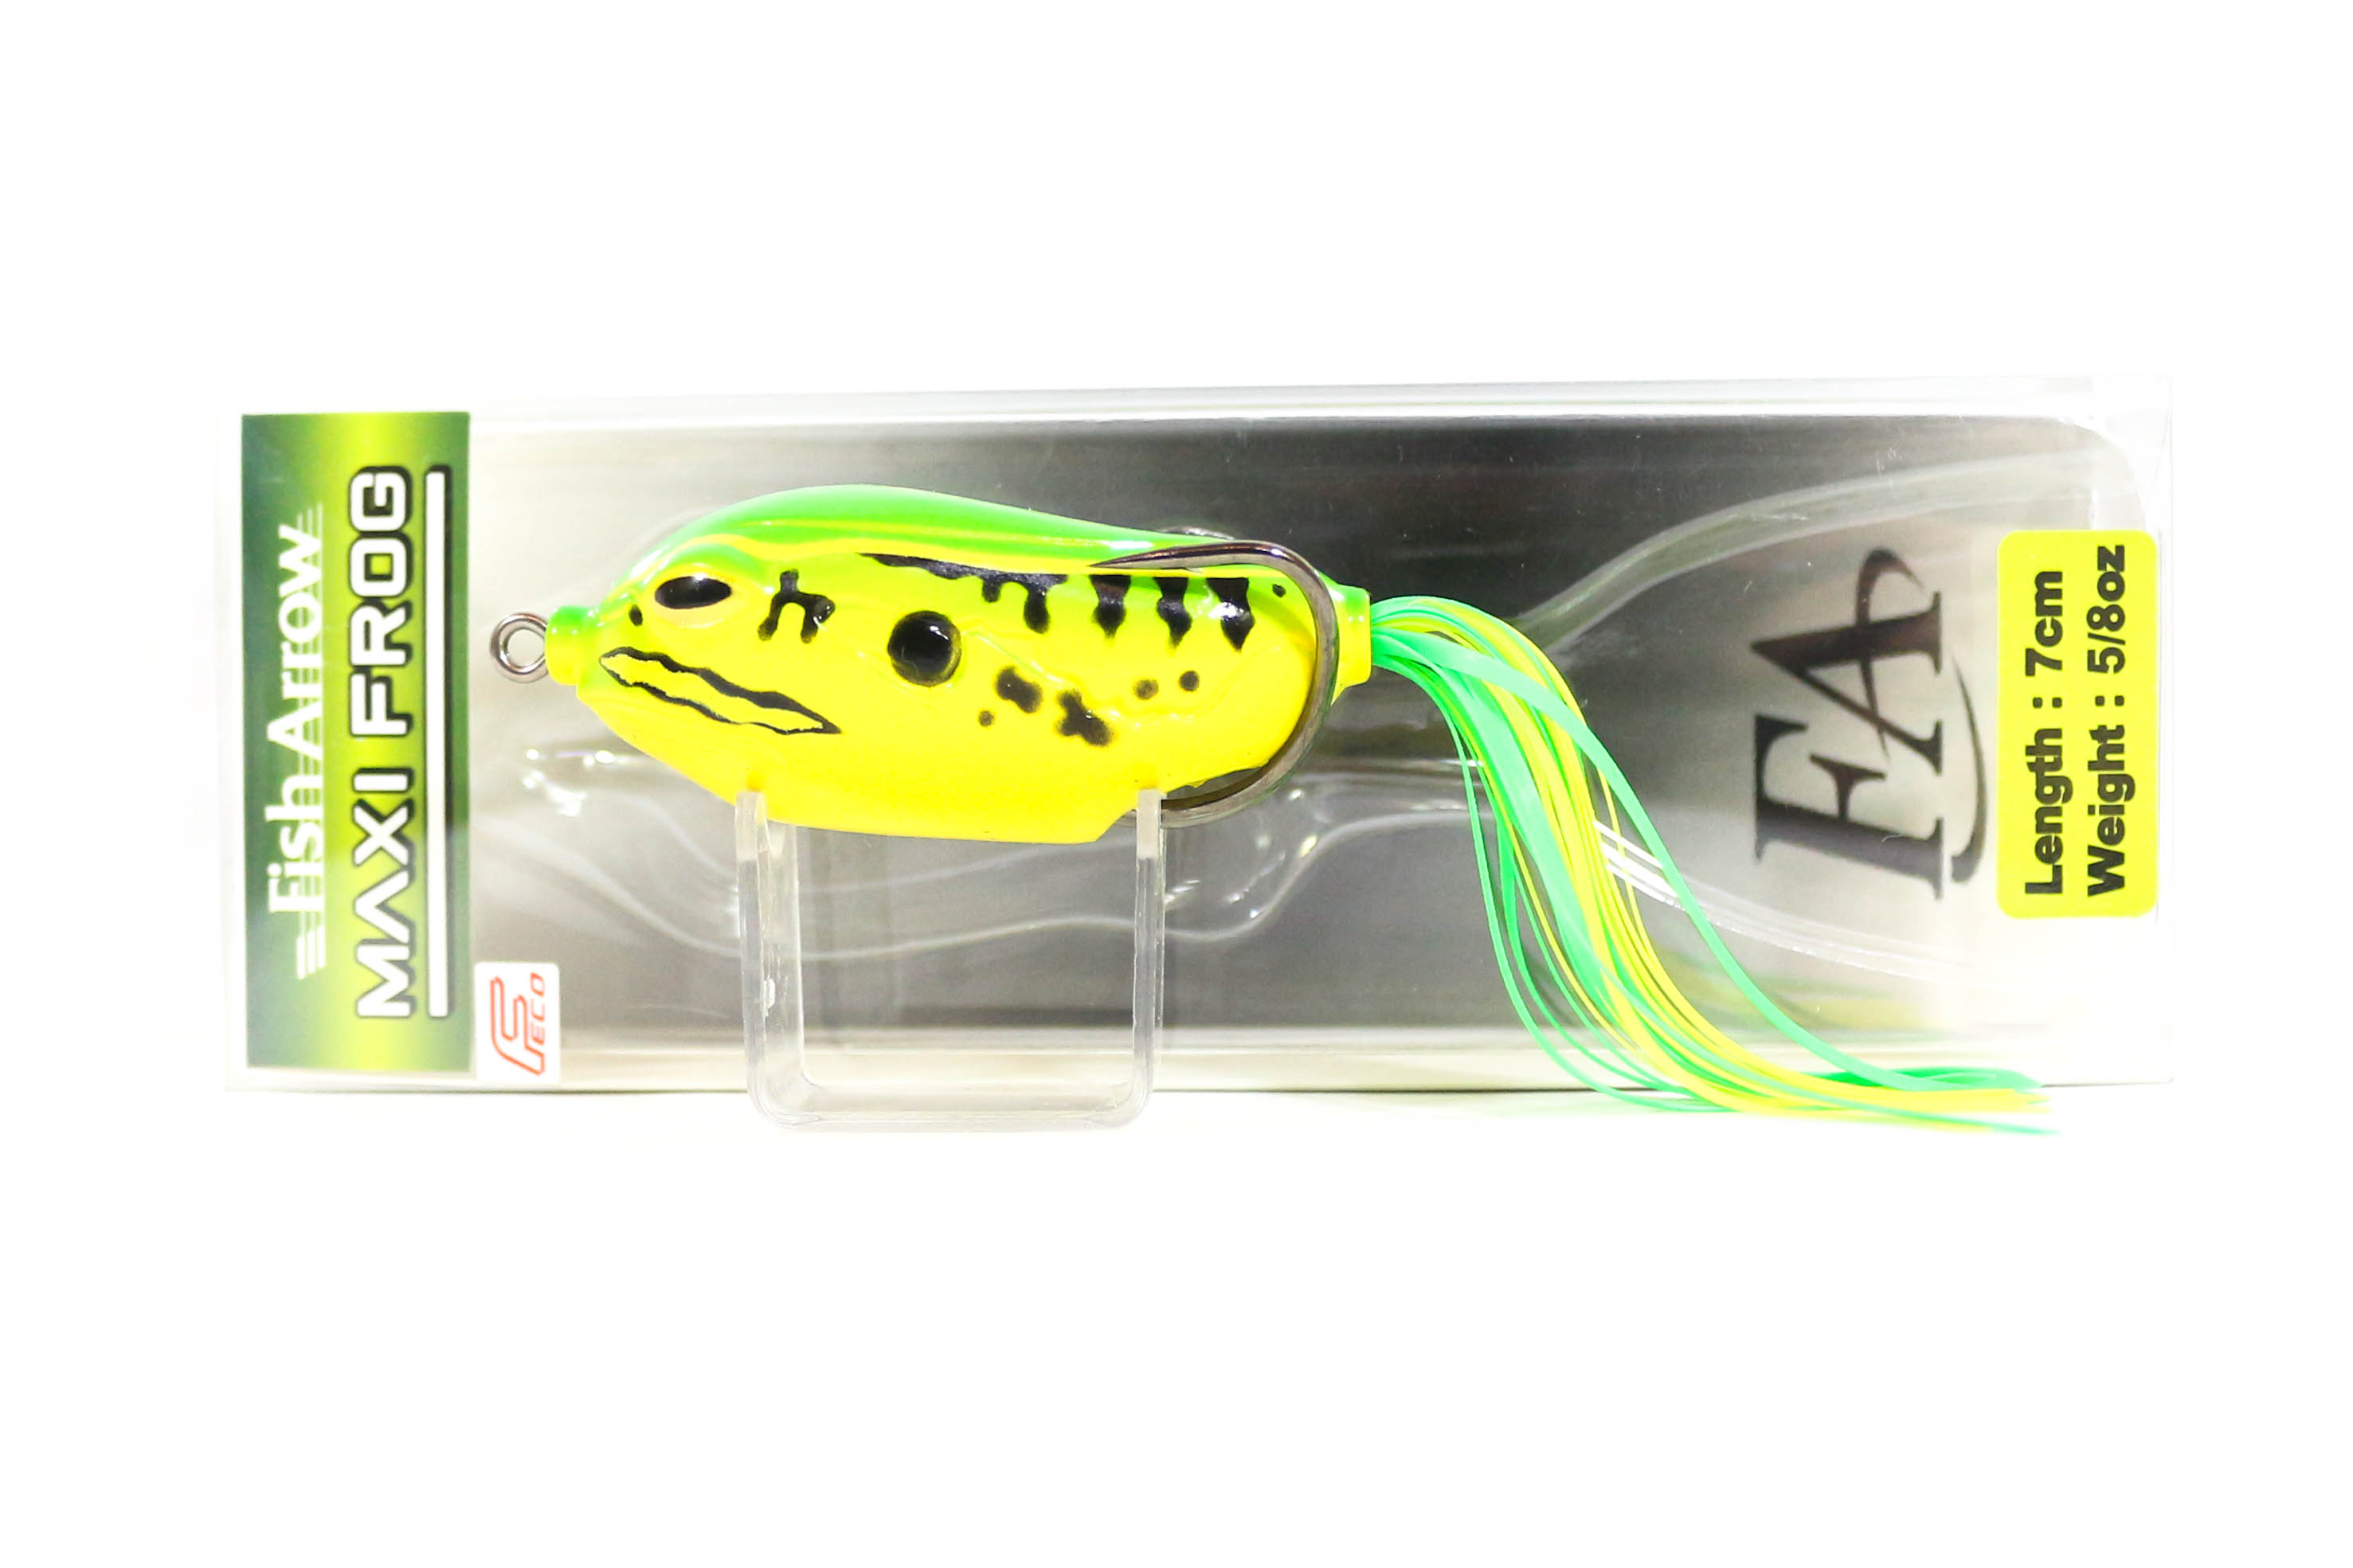 Fish Arrow Maxi Frog 7 cm 5/8 oz Soft Plastic Floating Lure 01 (4156)